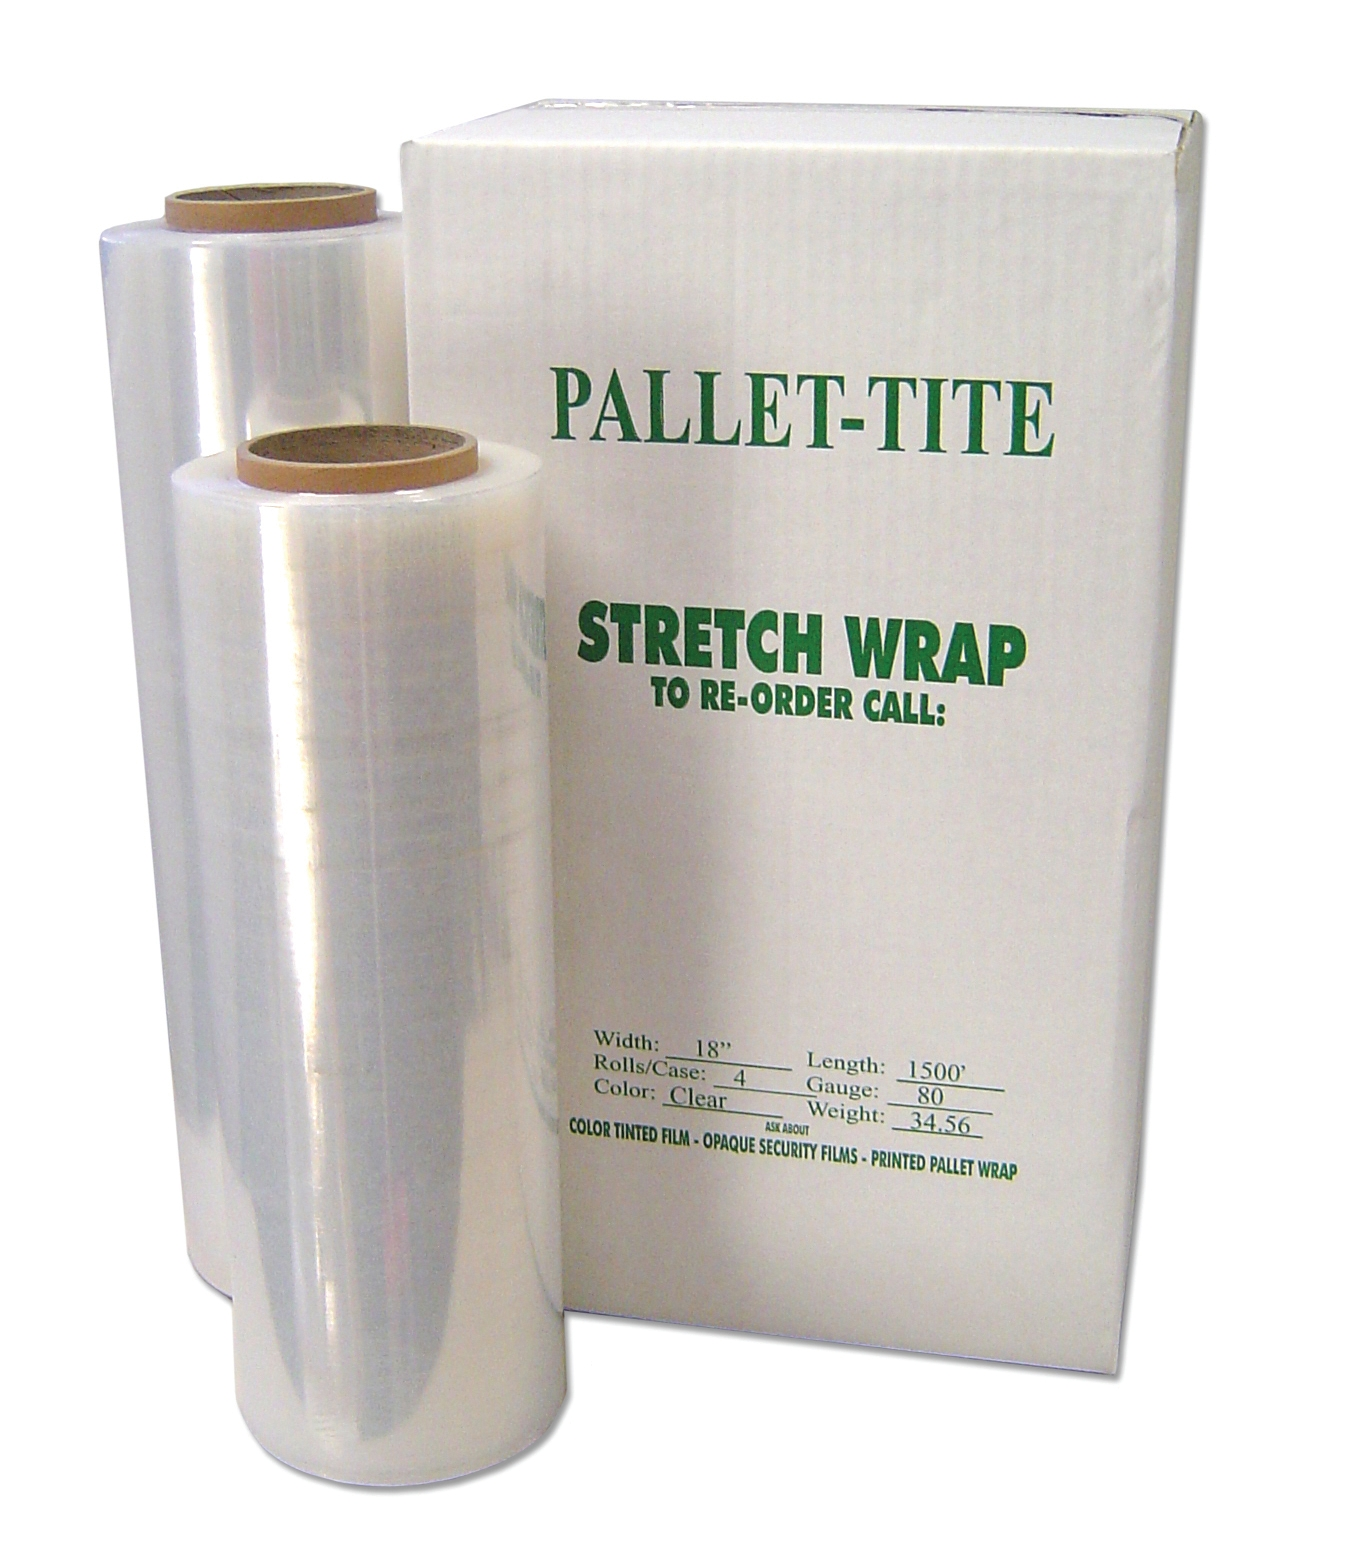 Pallet-Tite Stretch Film